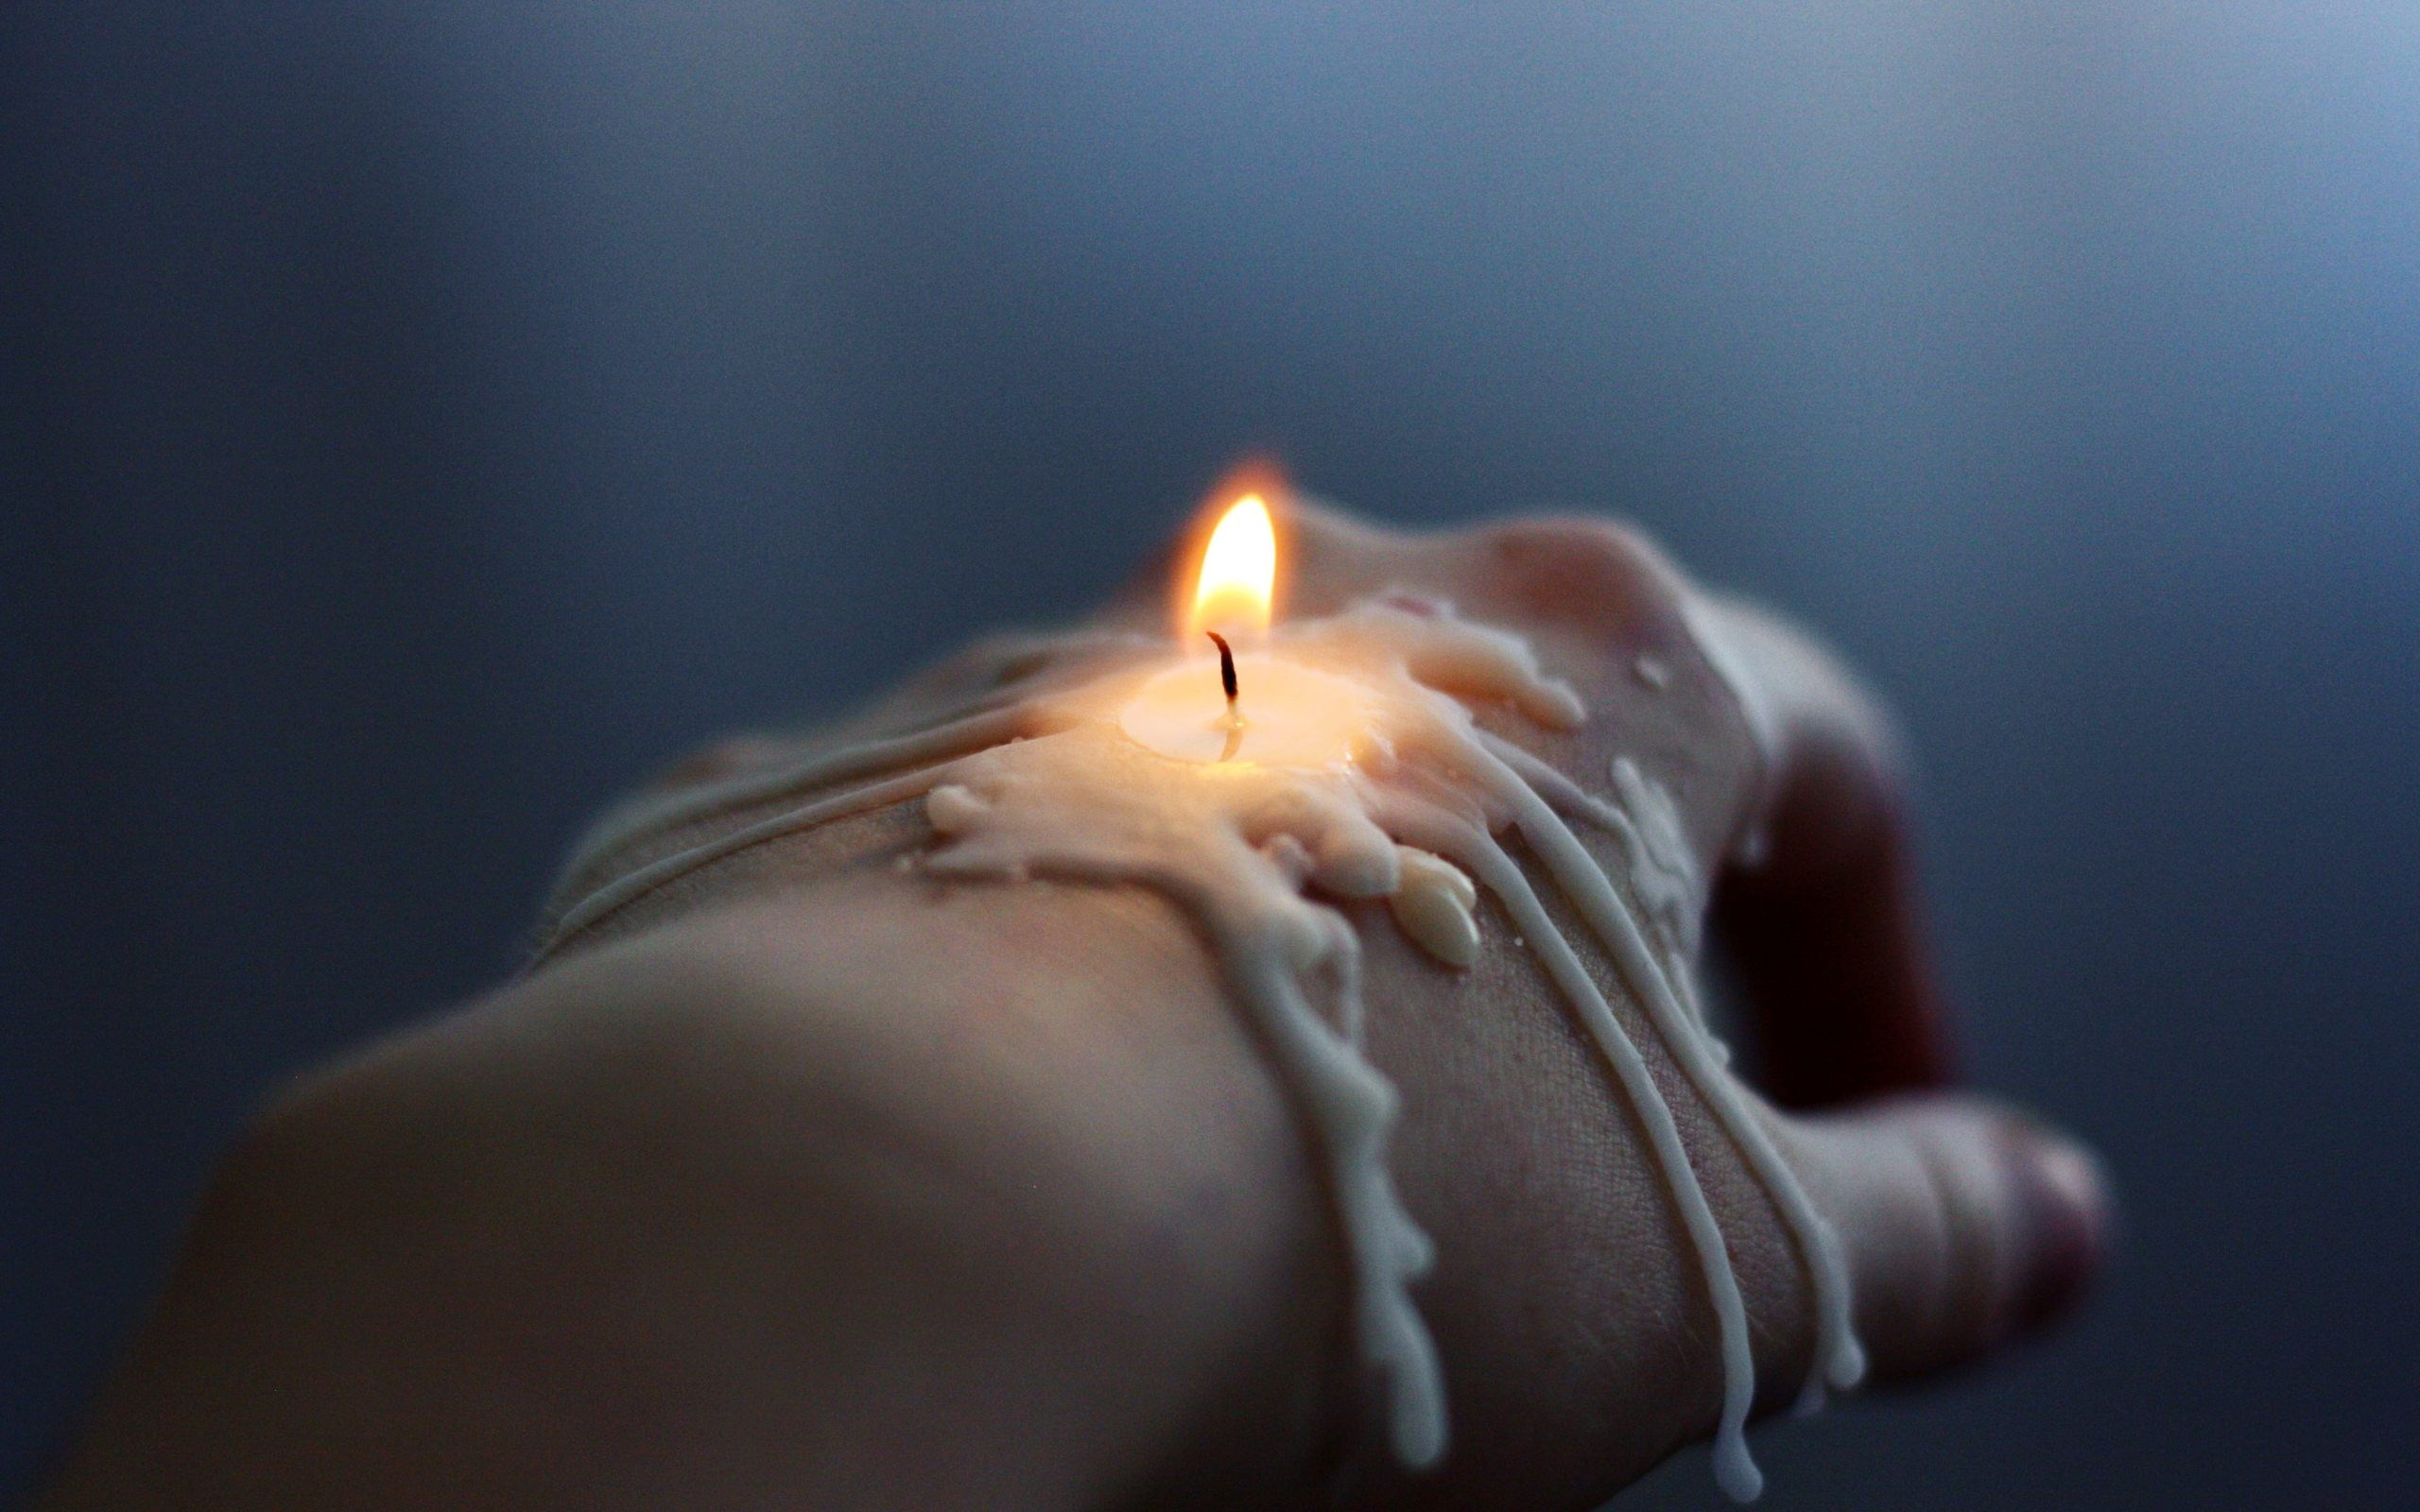 Candle on Hand